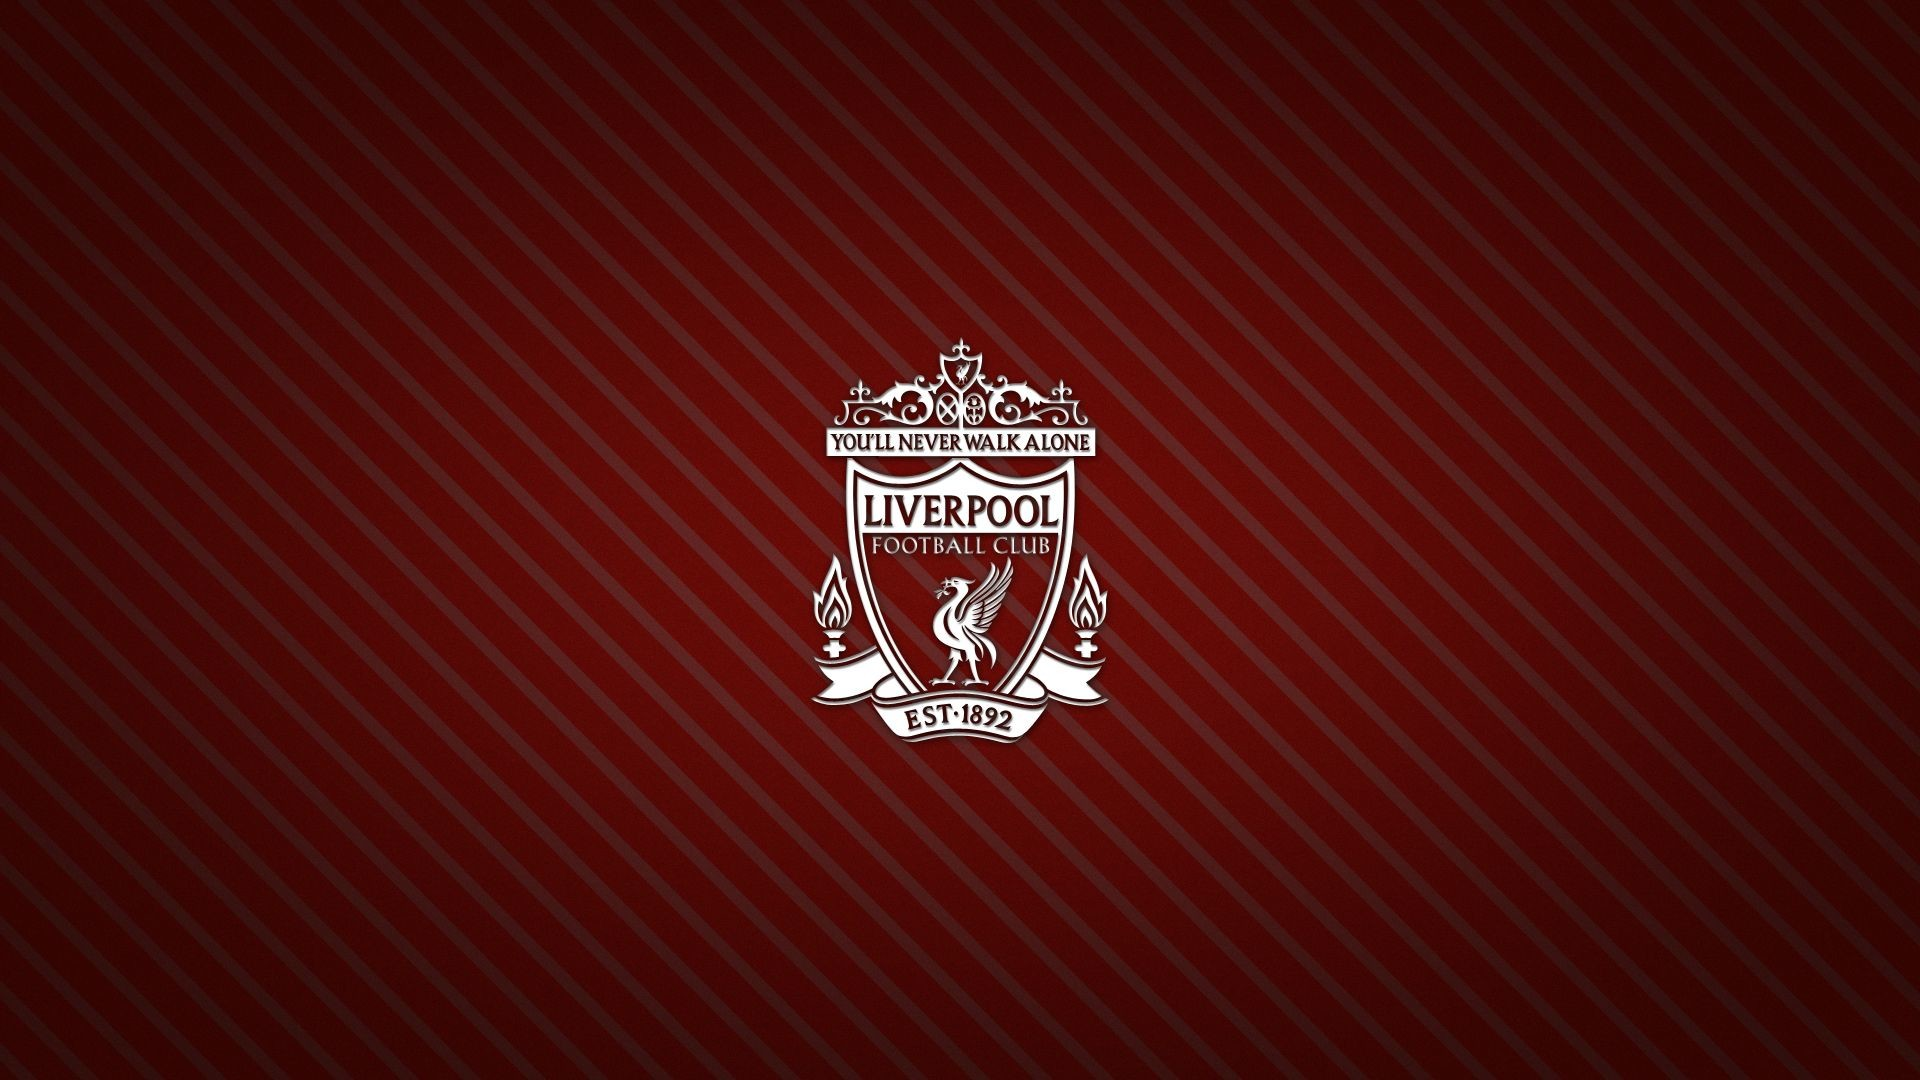 Liverpool FC Wallpaper. 1920×1080. Logo Mets Wallpaper